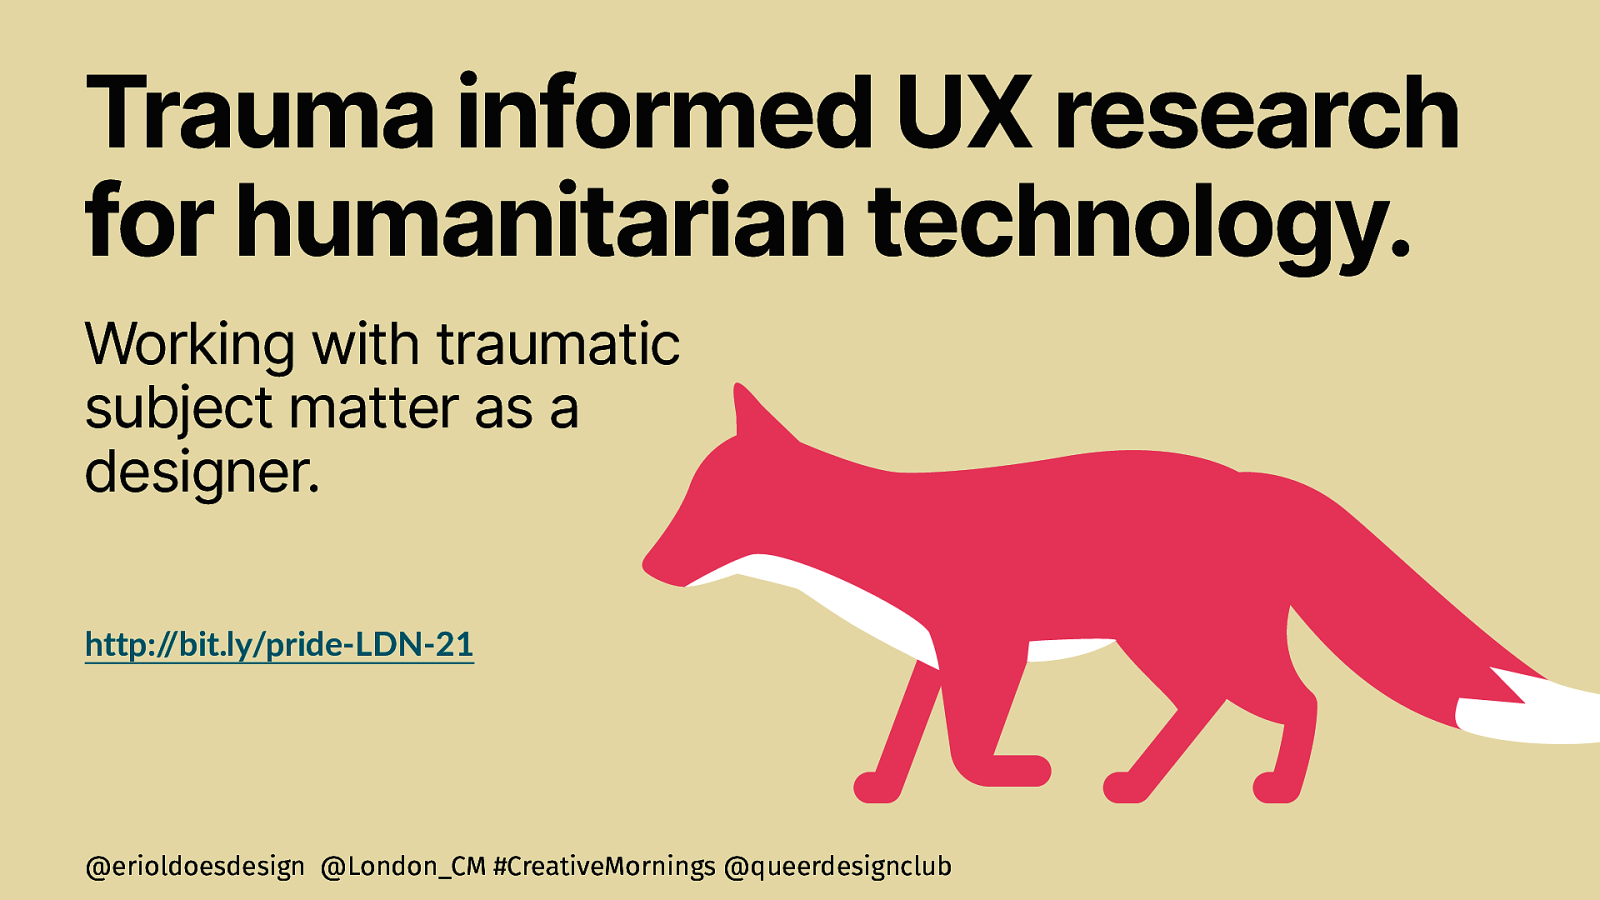 Trauma informed UX research for humanitarian technology.